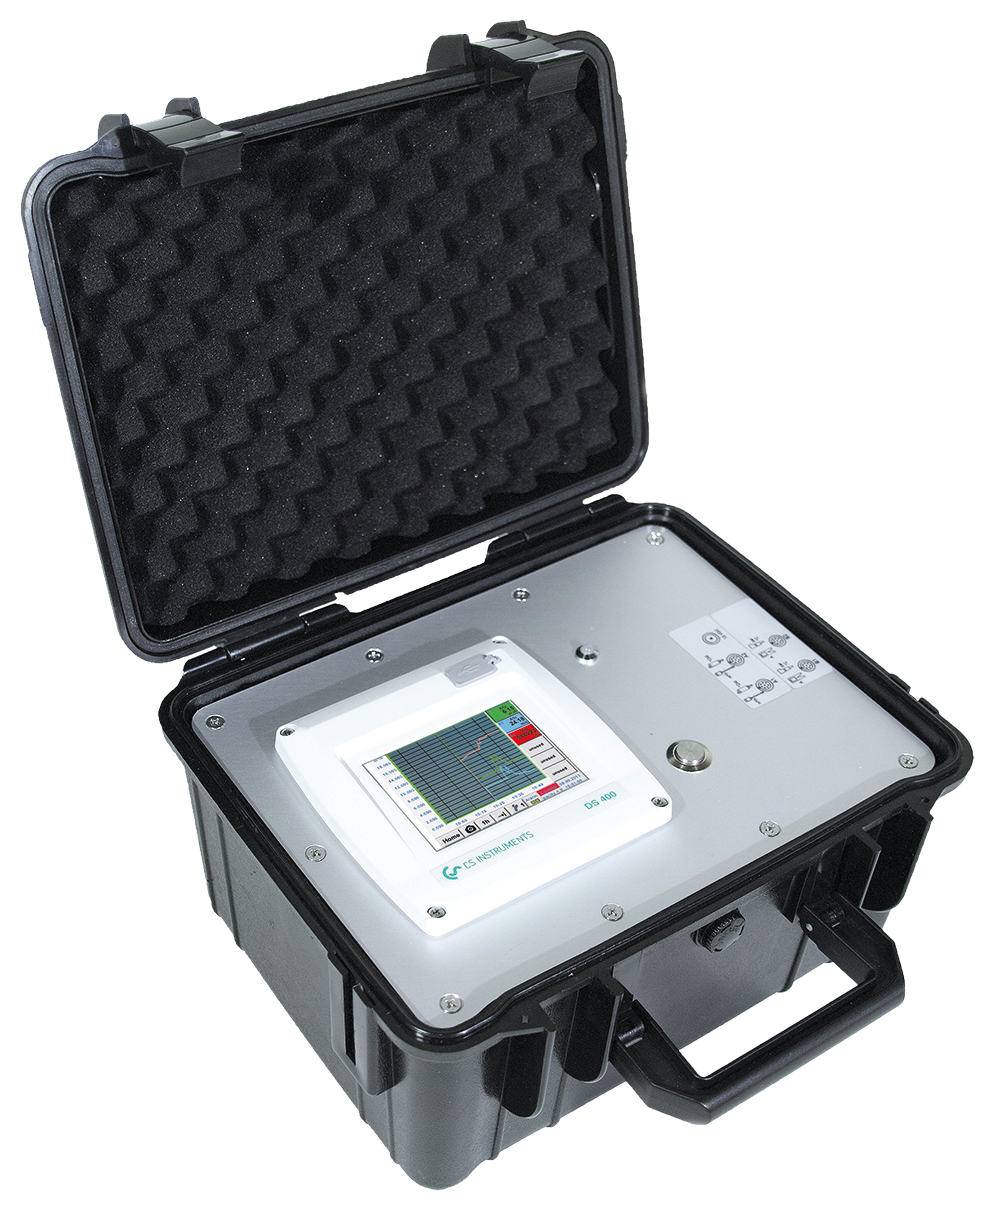 Affordable mobile chart recorder in a case - DS 400 mobile